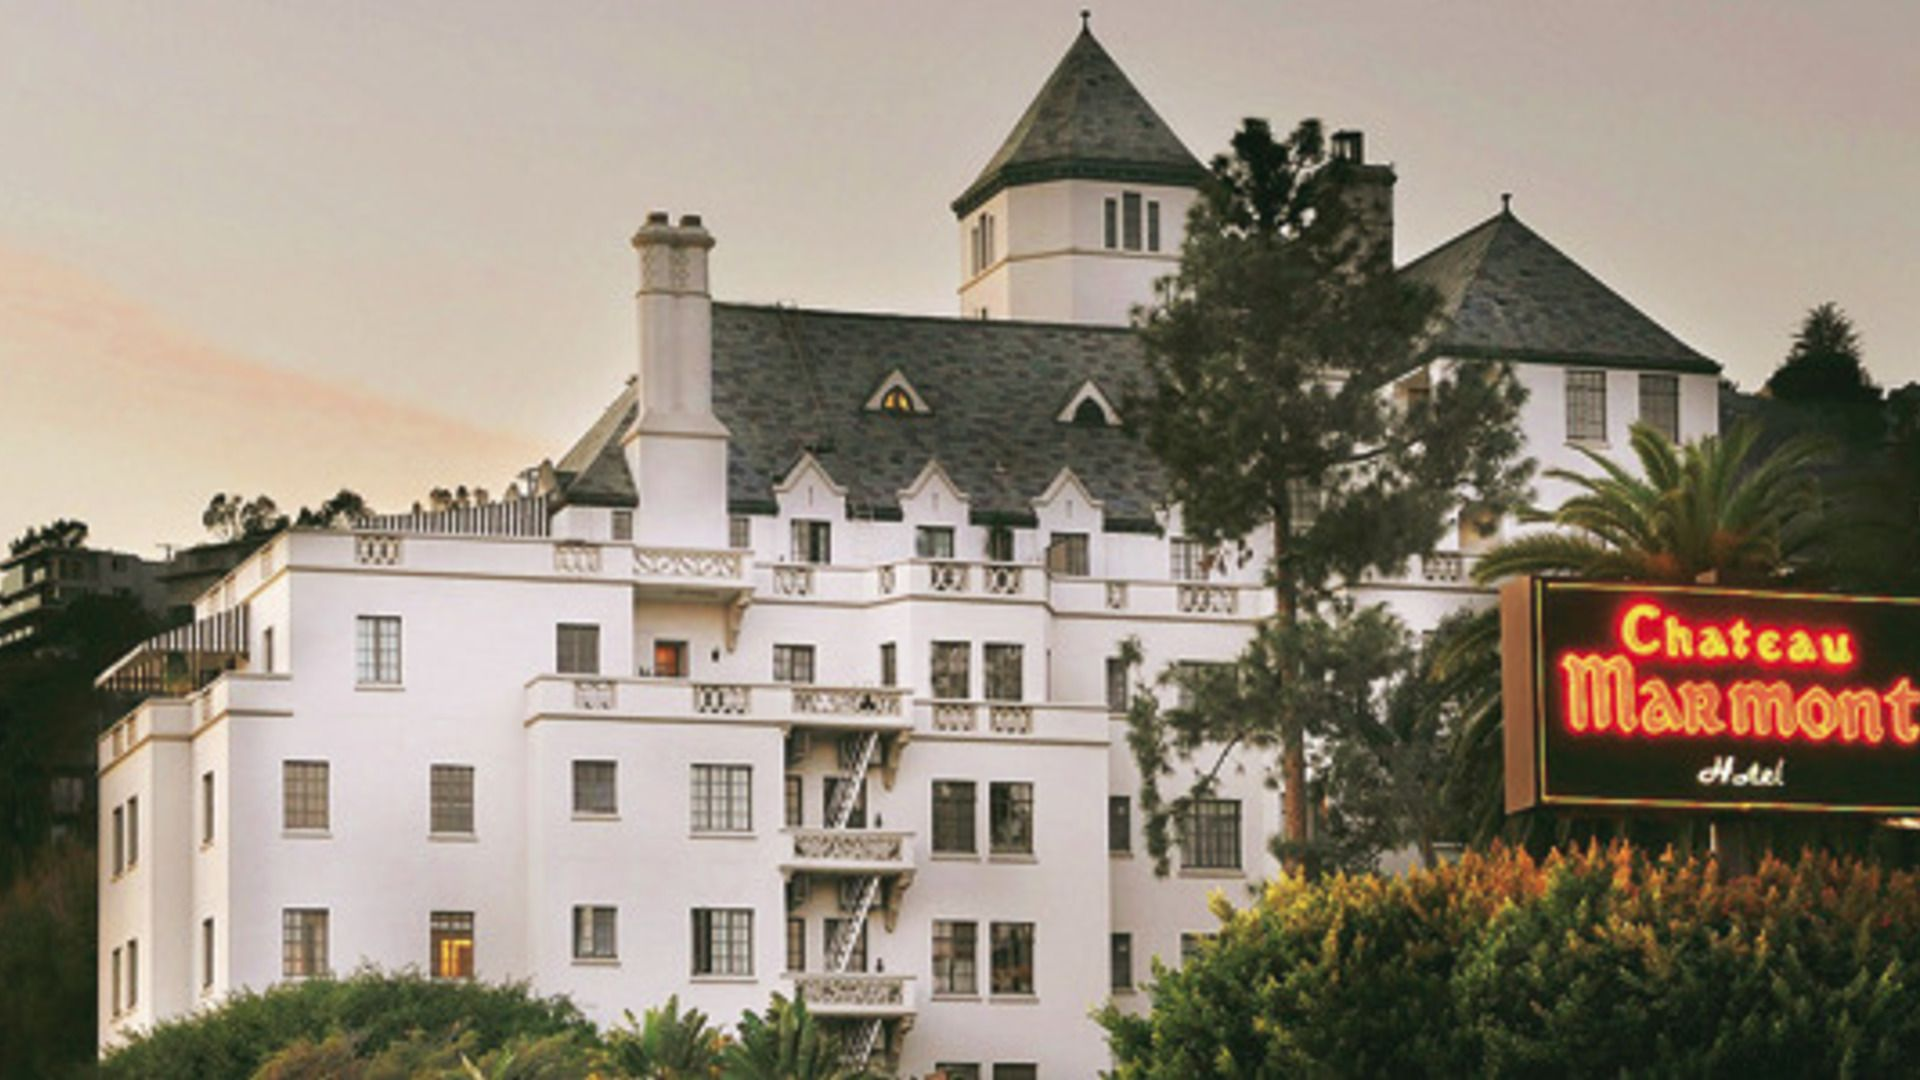 19 Rumors From Chateau Marmont That Blur The Lines Between Fact And Fiction